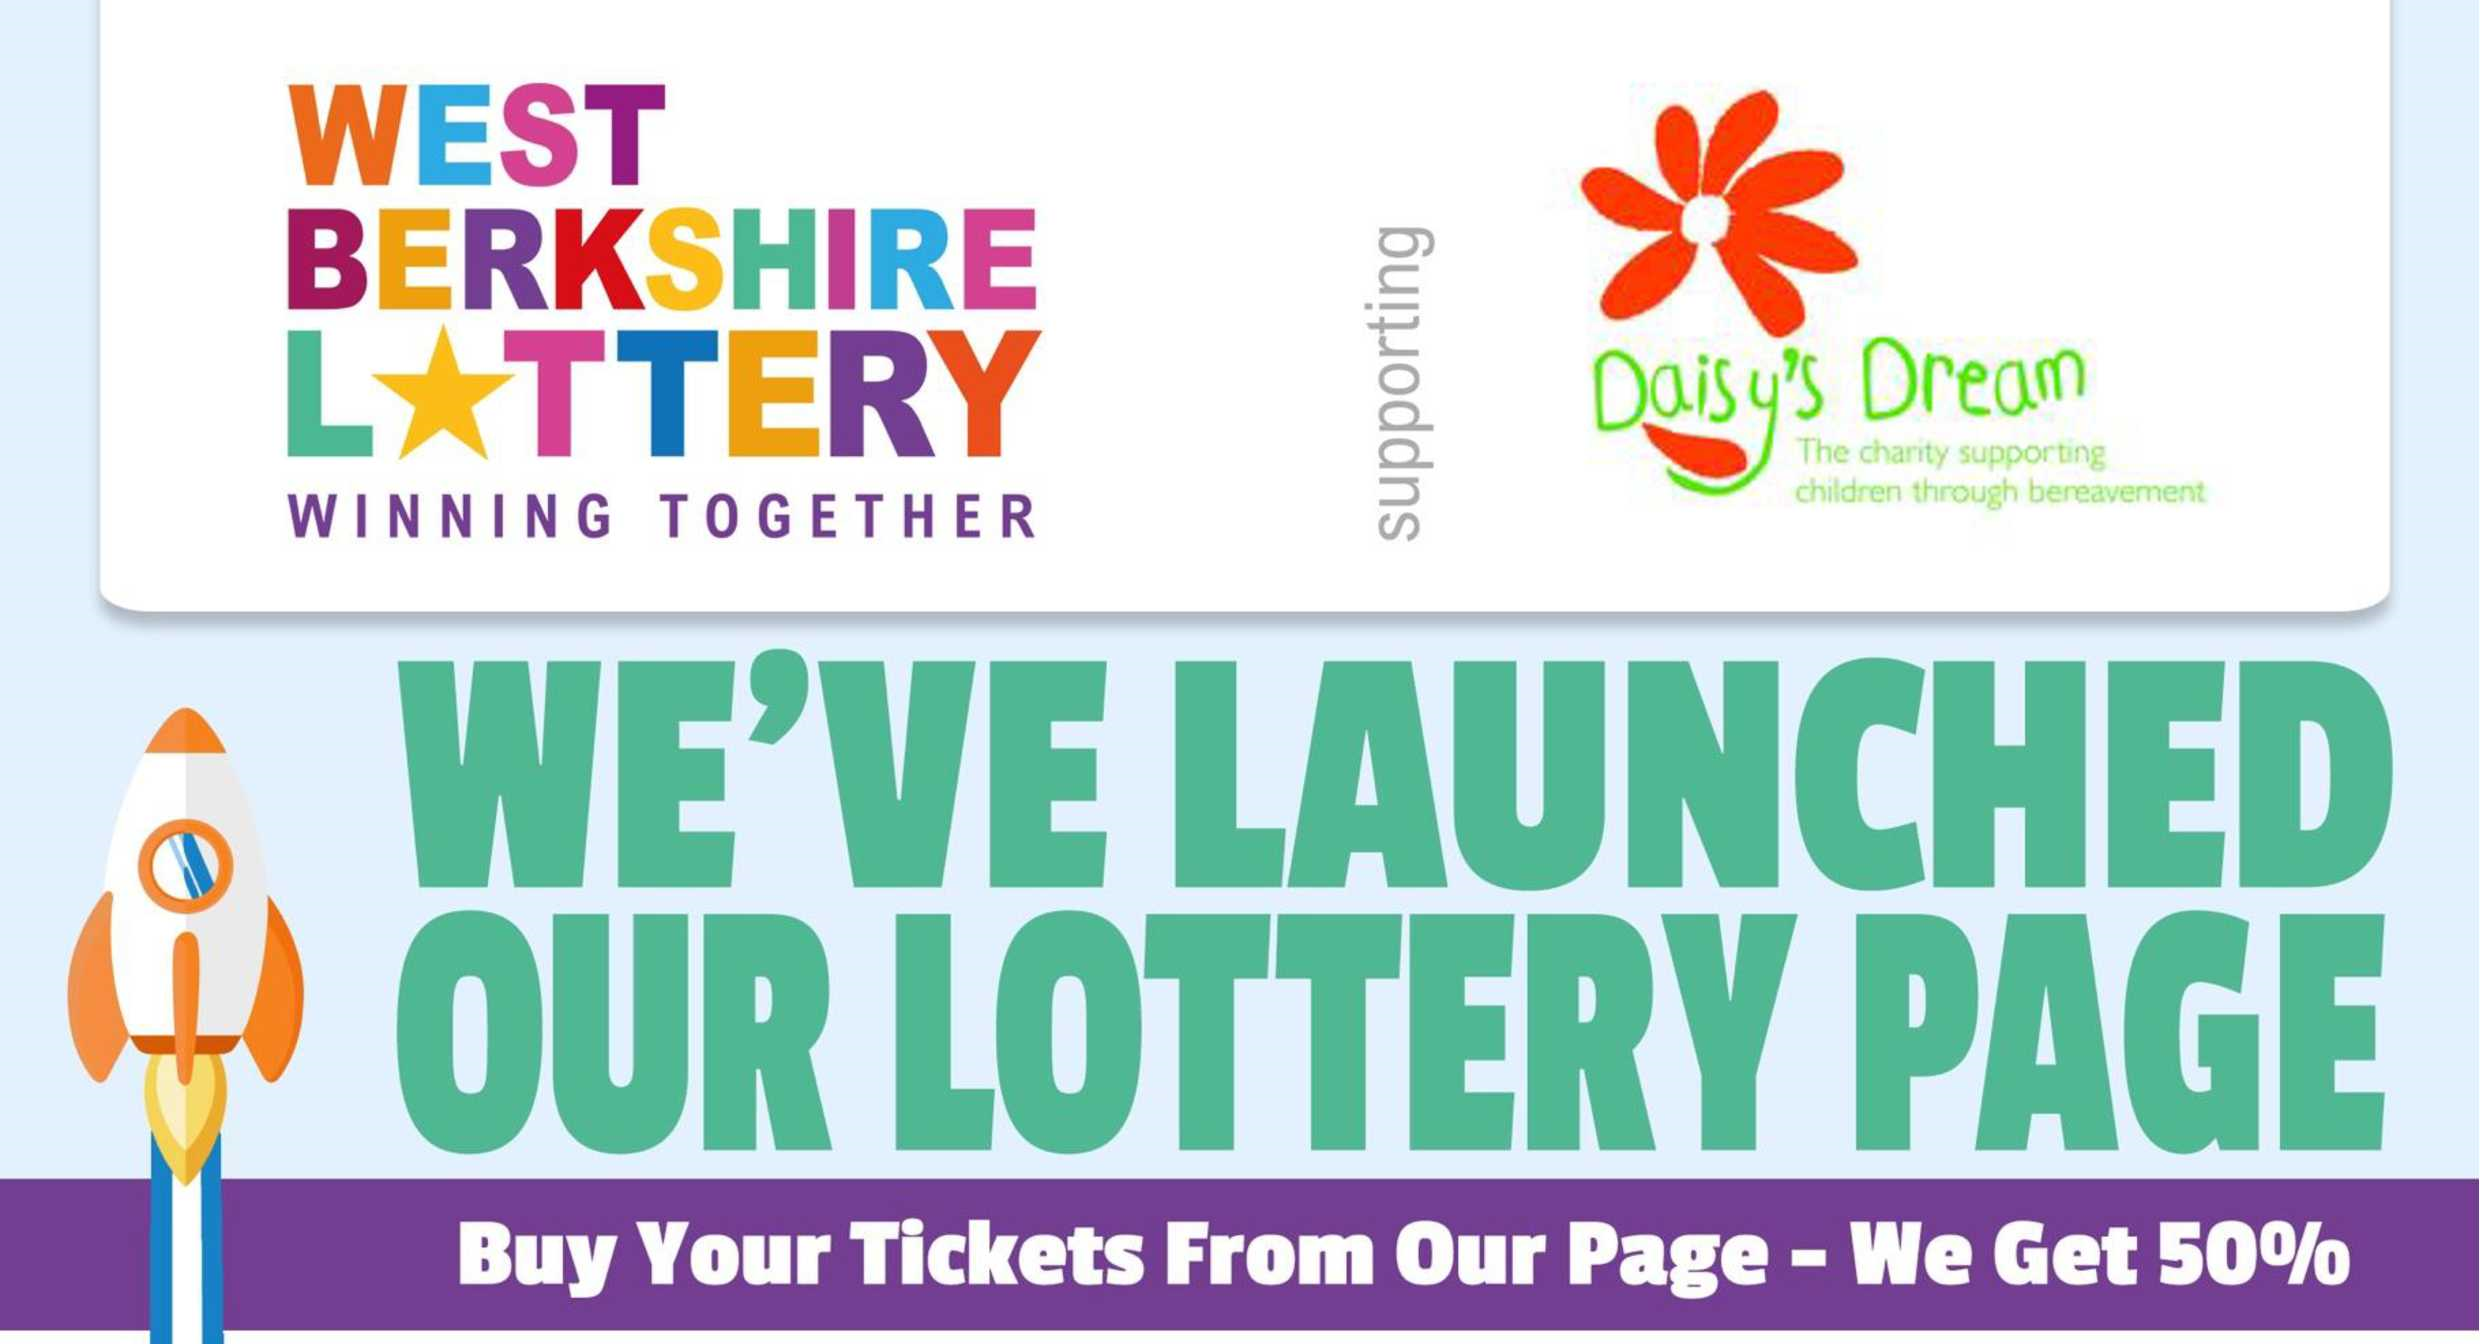 Lottery will help Daisy's Dream to provide support to West Berkshire families.